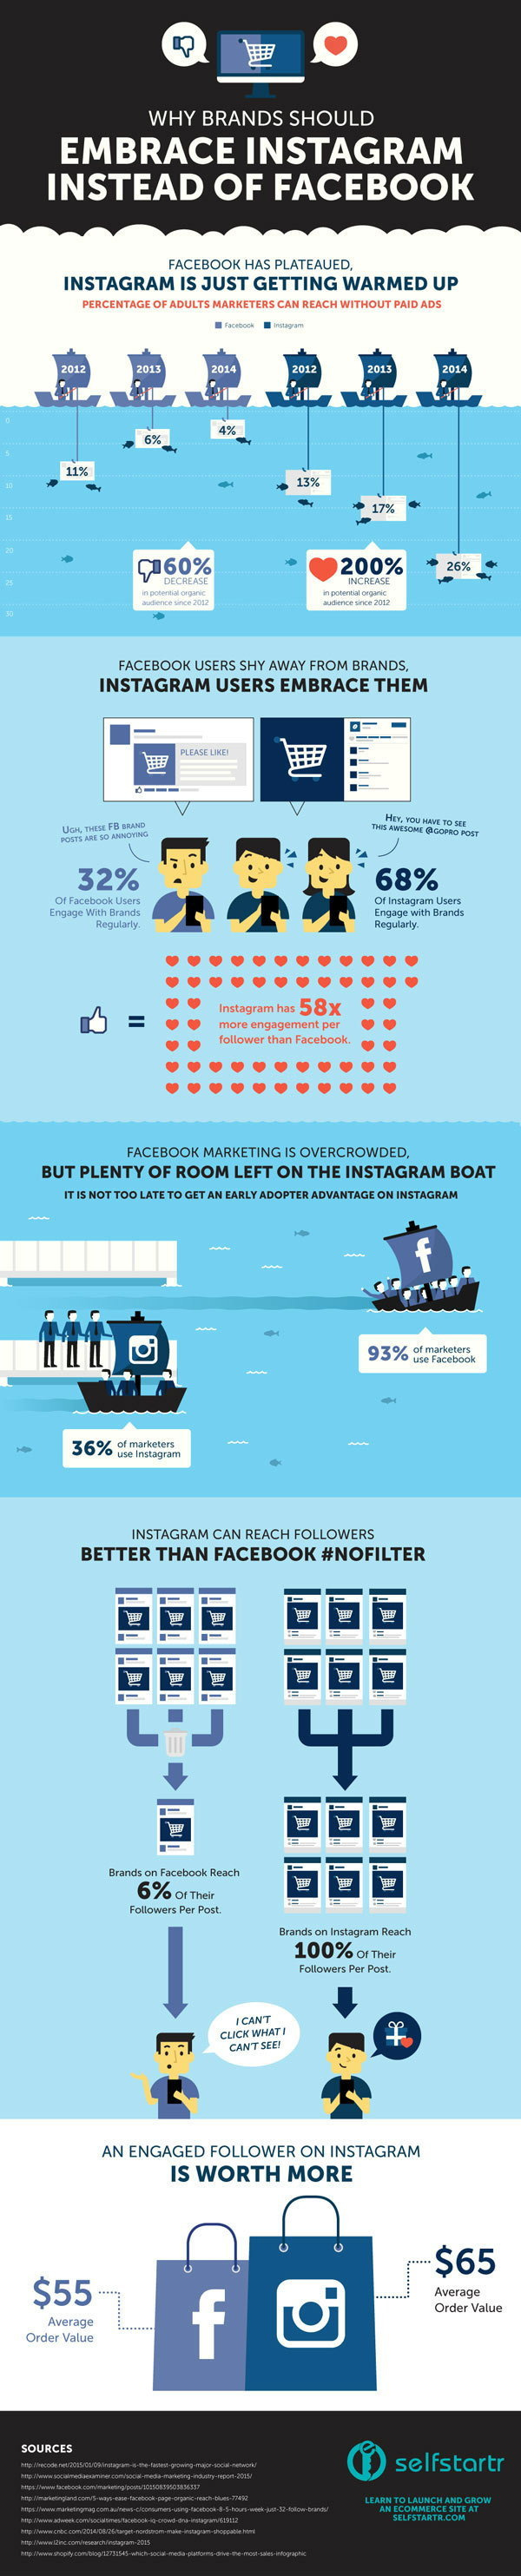 Why-Brands-Should-Embrace-Instagram-Instead-of-Facebook-INFOGRAPHIC-by-selfstartr